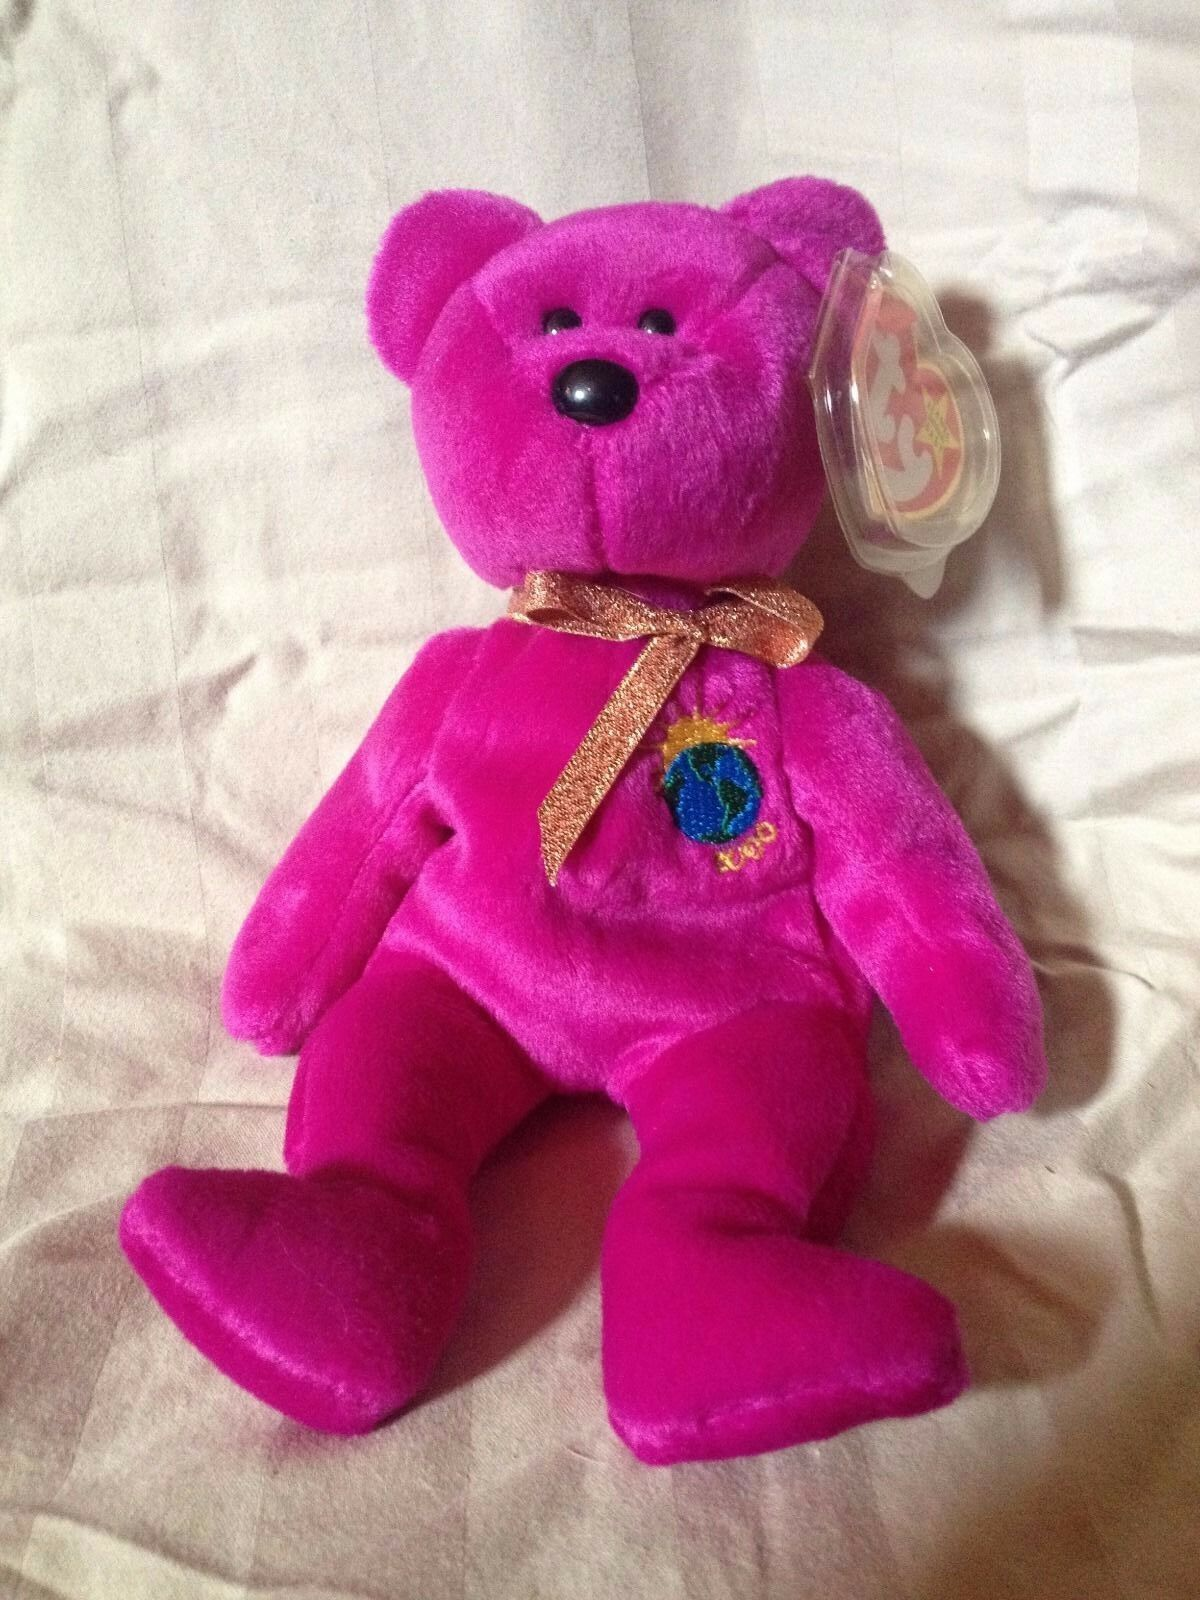 Extremely Rare Millennium Bear With THREE Errors